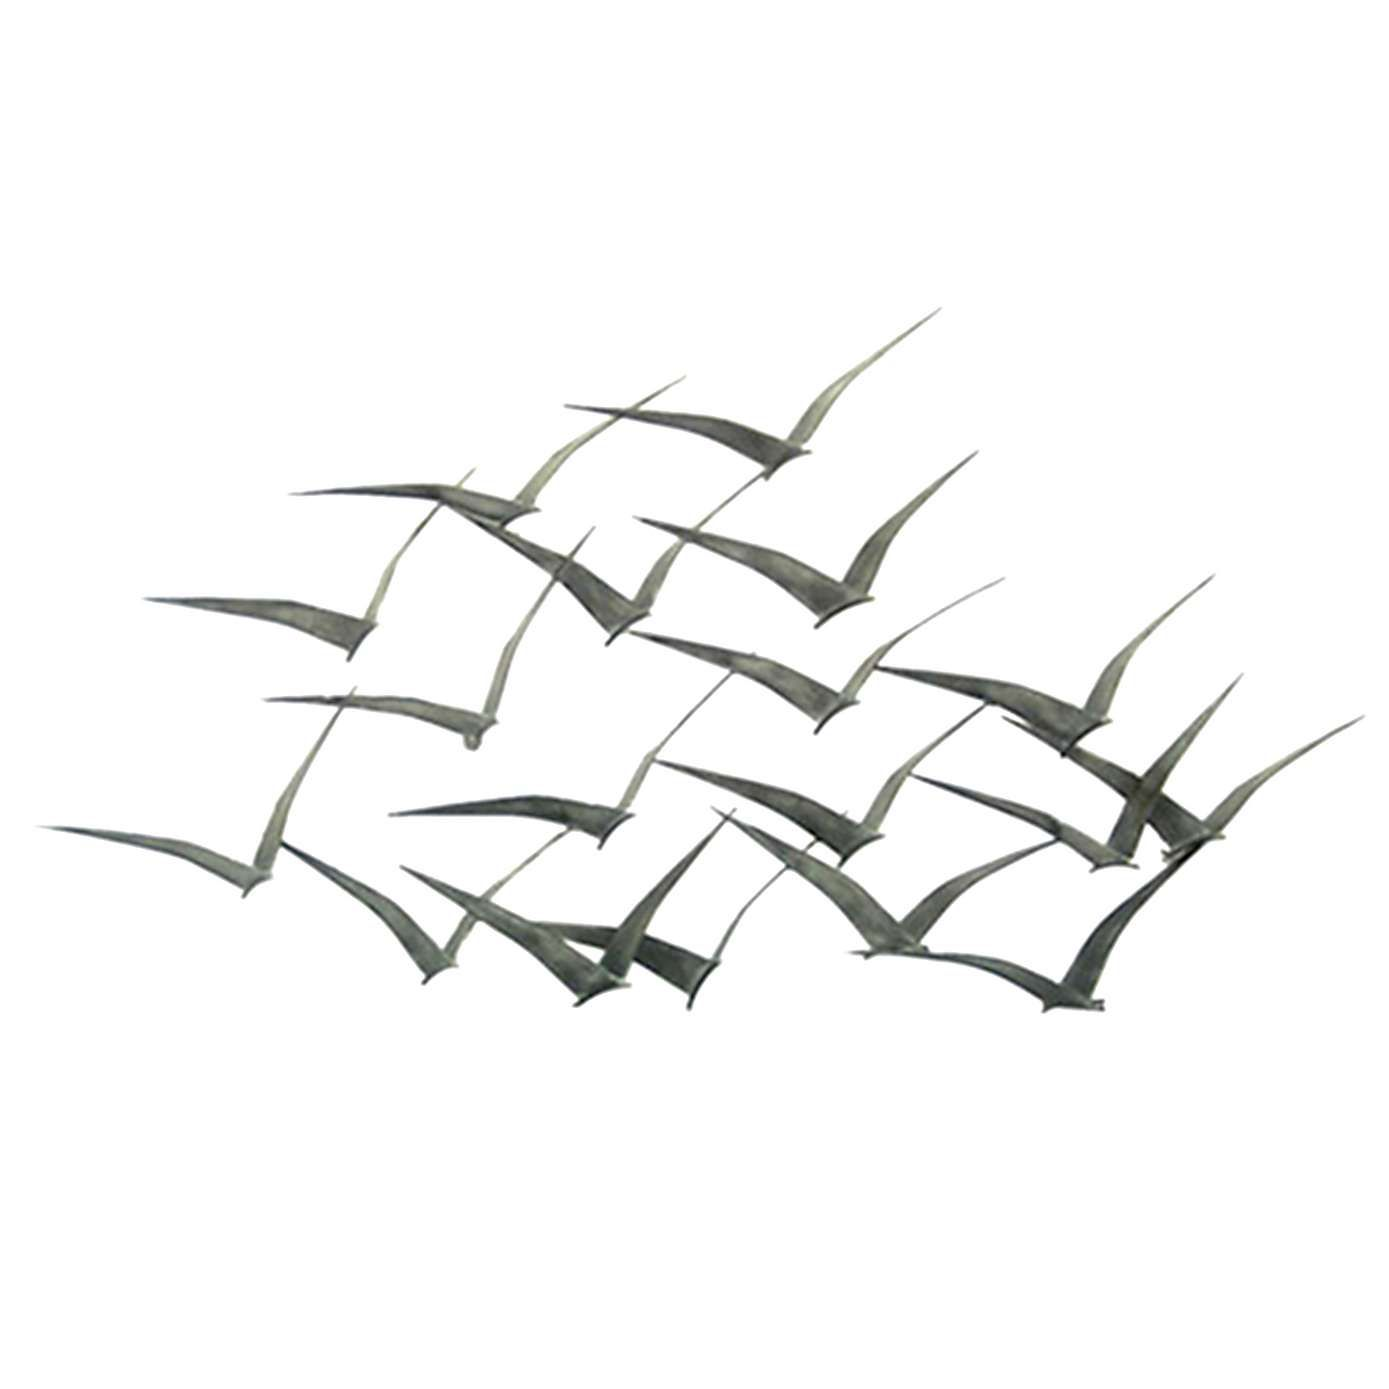 Flock of metal flying birds wall art dunelm